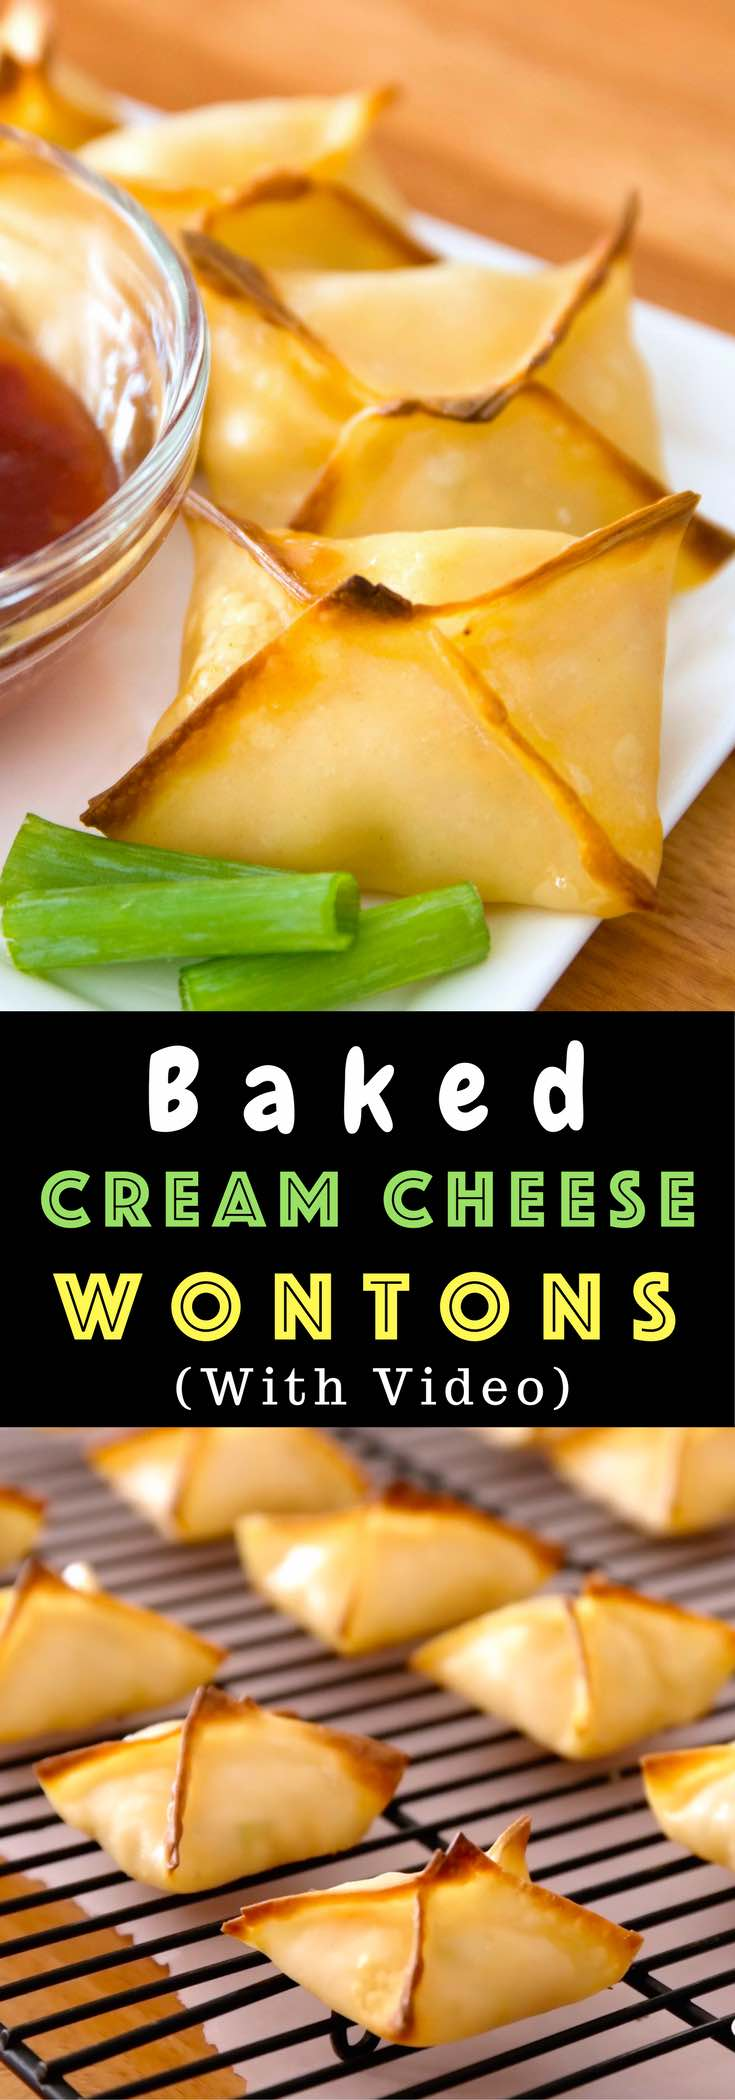 Easy Baked Shrimp Wontons – delicious crispy and creamy Cream Cream Cheese Wontons baked to perfect golden brown. They are so easy to make! Quick and easy recipe. Video recipe.